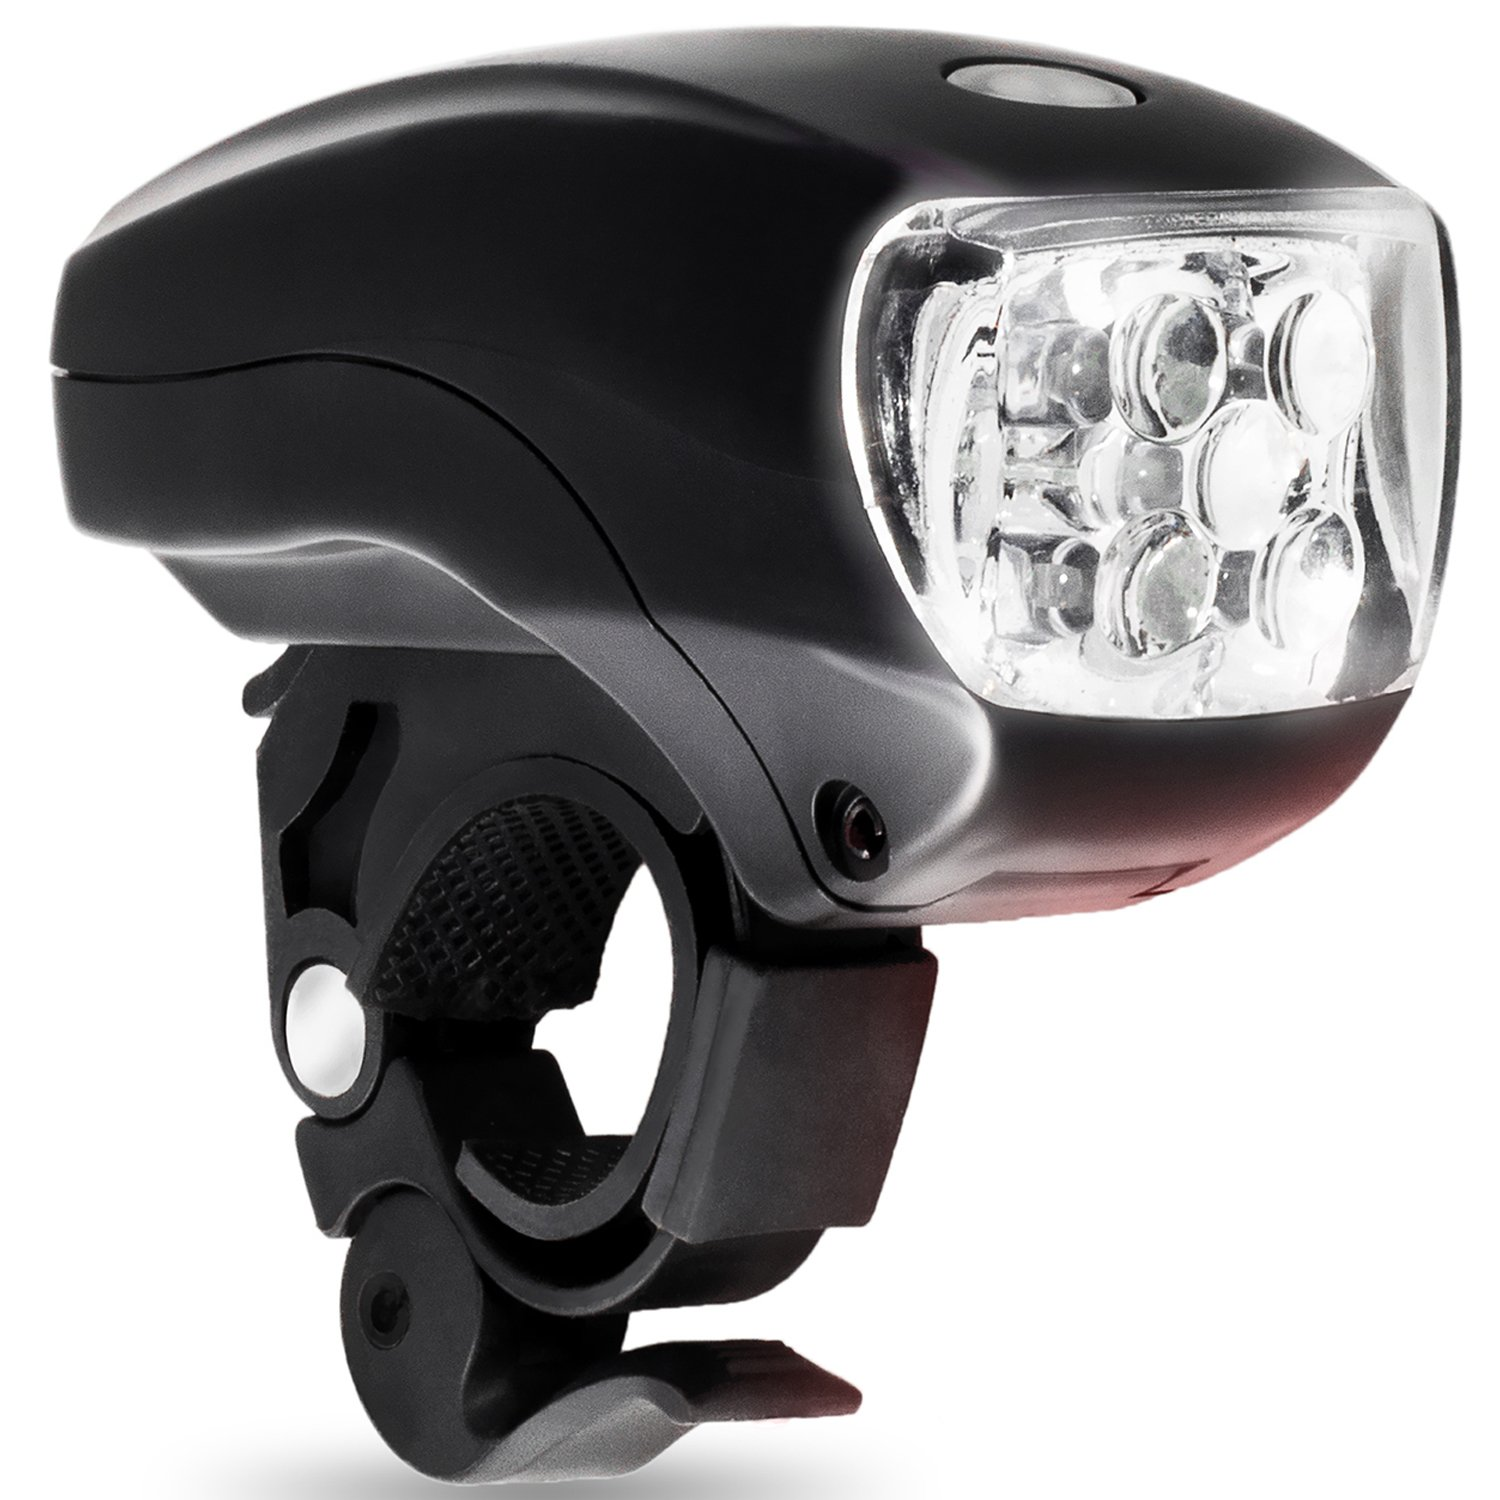 LED BIKE LIGHT SET. Bicycle headlight & taillight combo. Ultrabright 5 LED kit.. Use on bike or scooter. FREE high visibility reflectors. ~ In BG Lights gift box as pictured by BoG Products (Image #6)